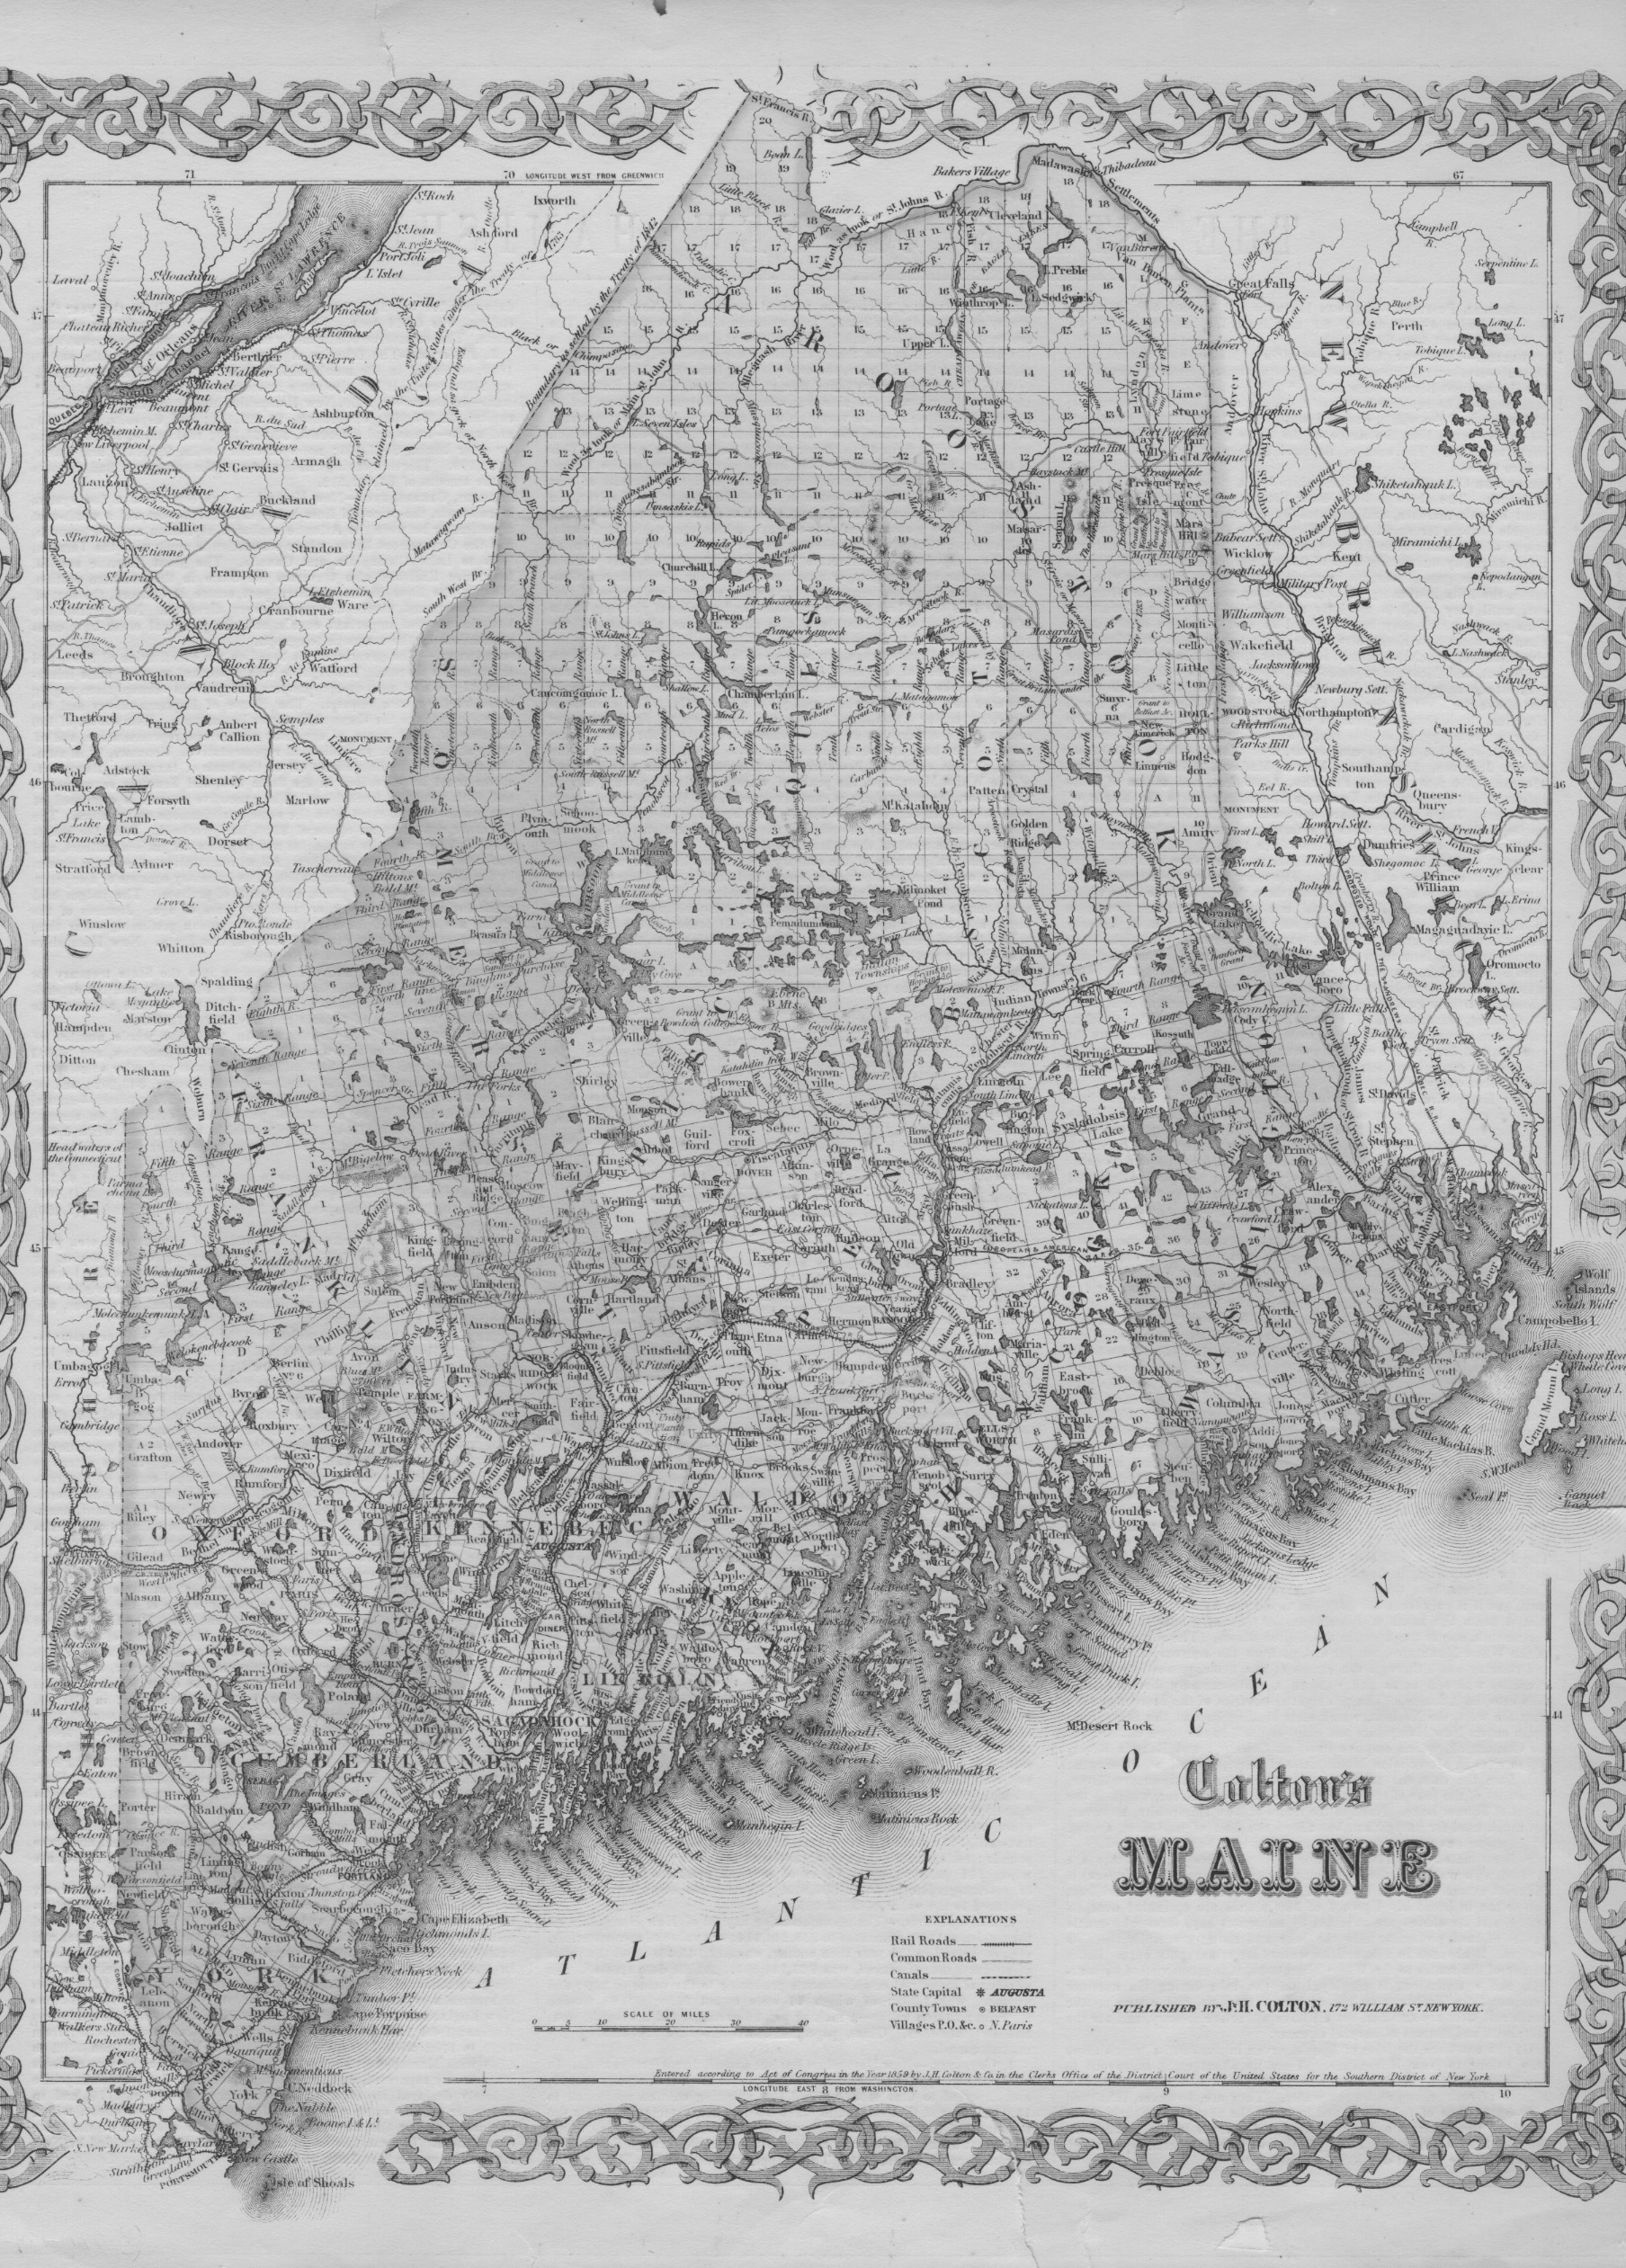 B&W 1859 Colton map